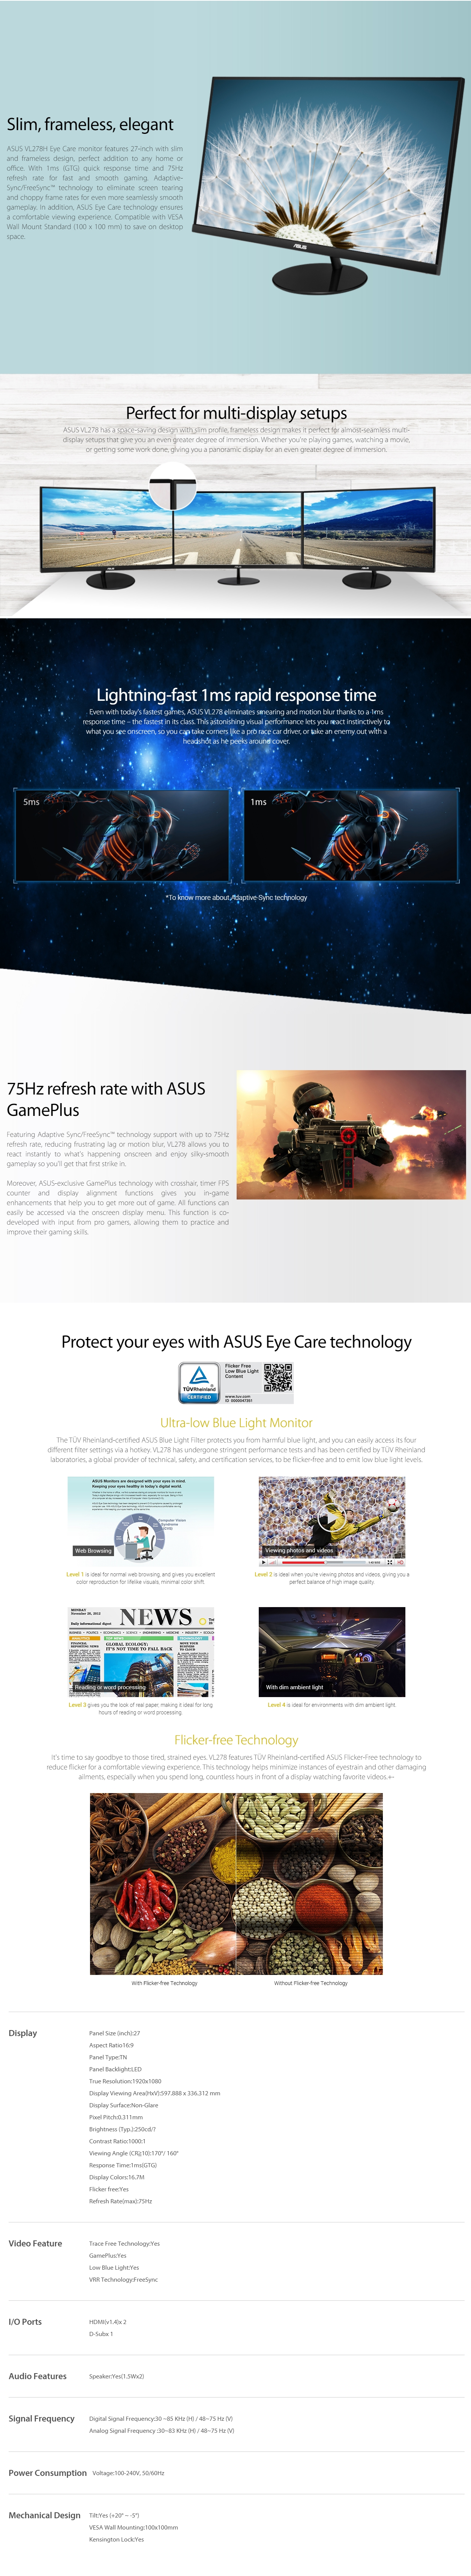 """A large marketing image providing additional information about the product ASUS VL278H 27"""" Full HD 1MS TN FreeSync Monitor - Additional alt info not provided"""